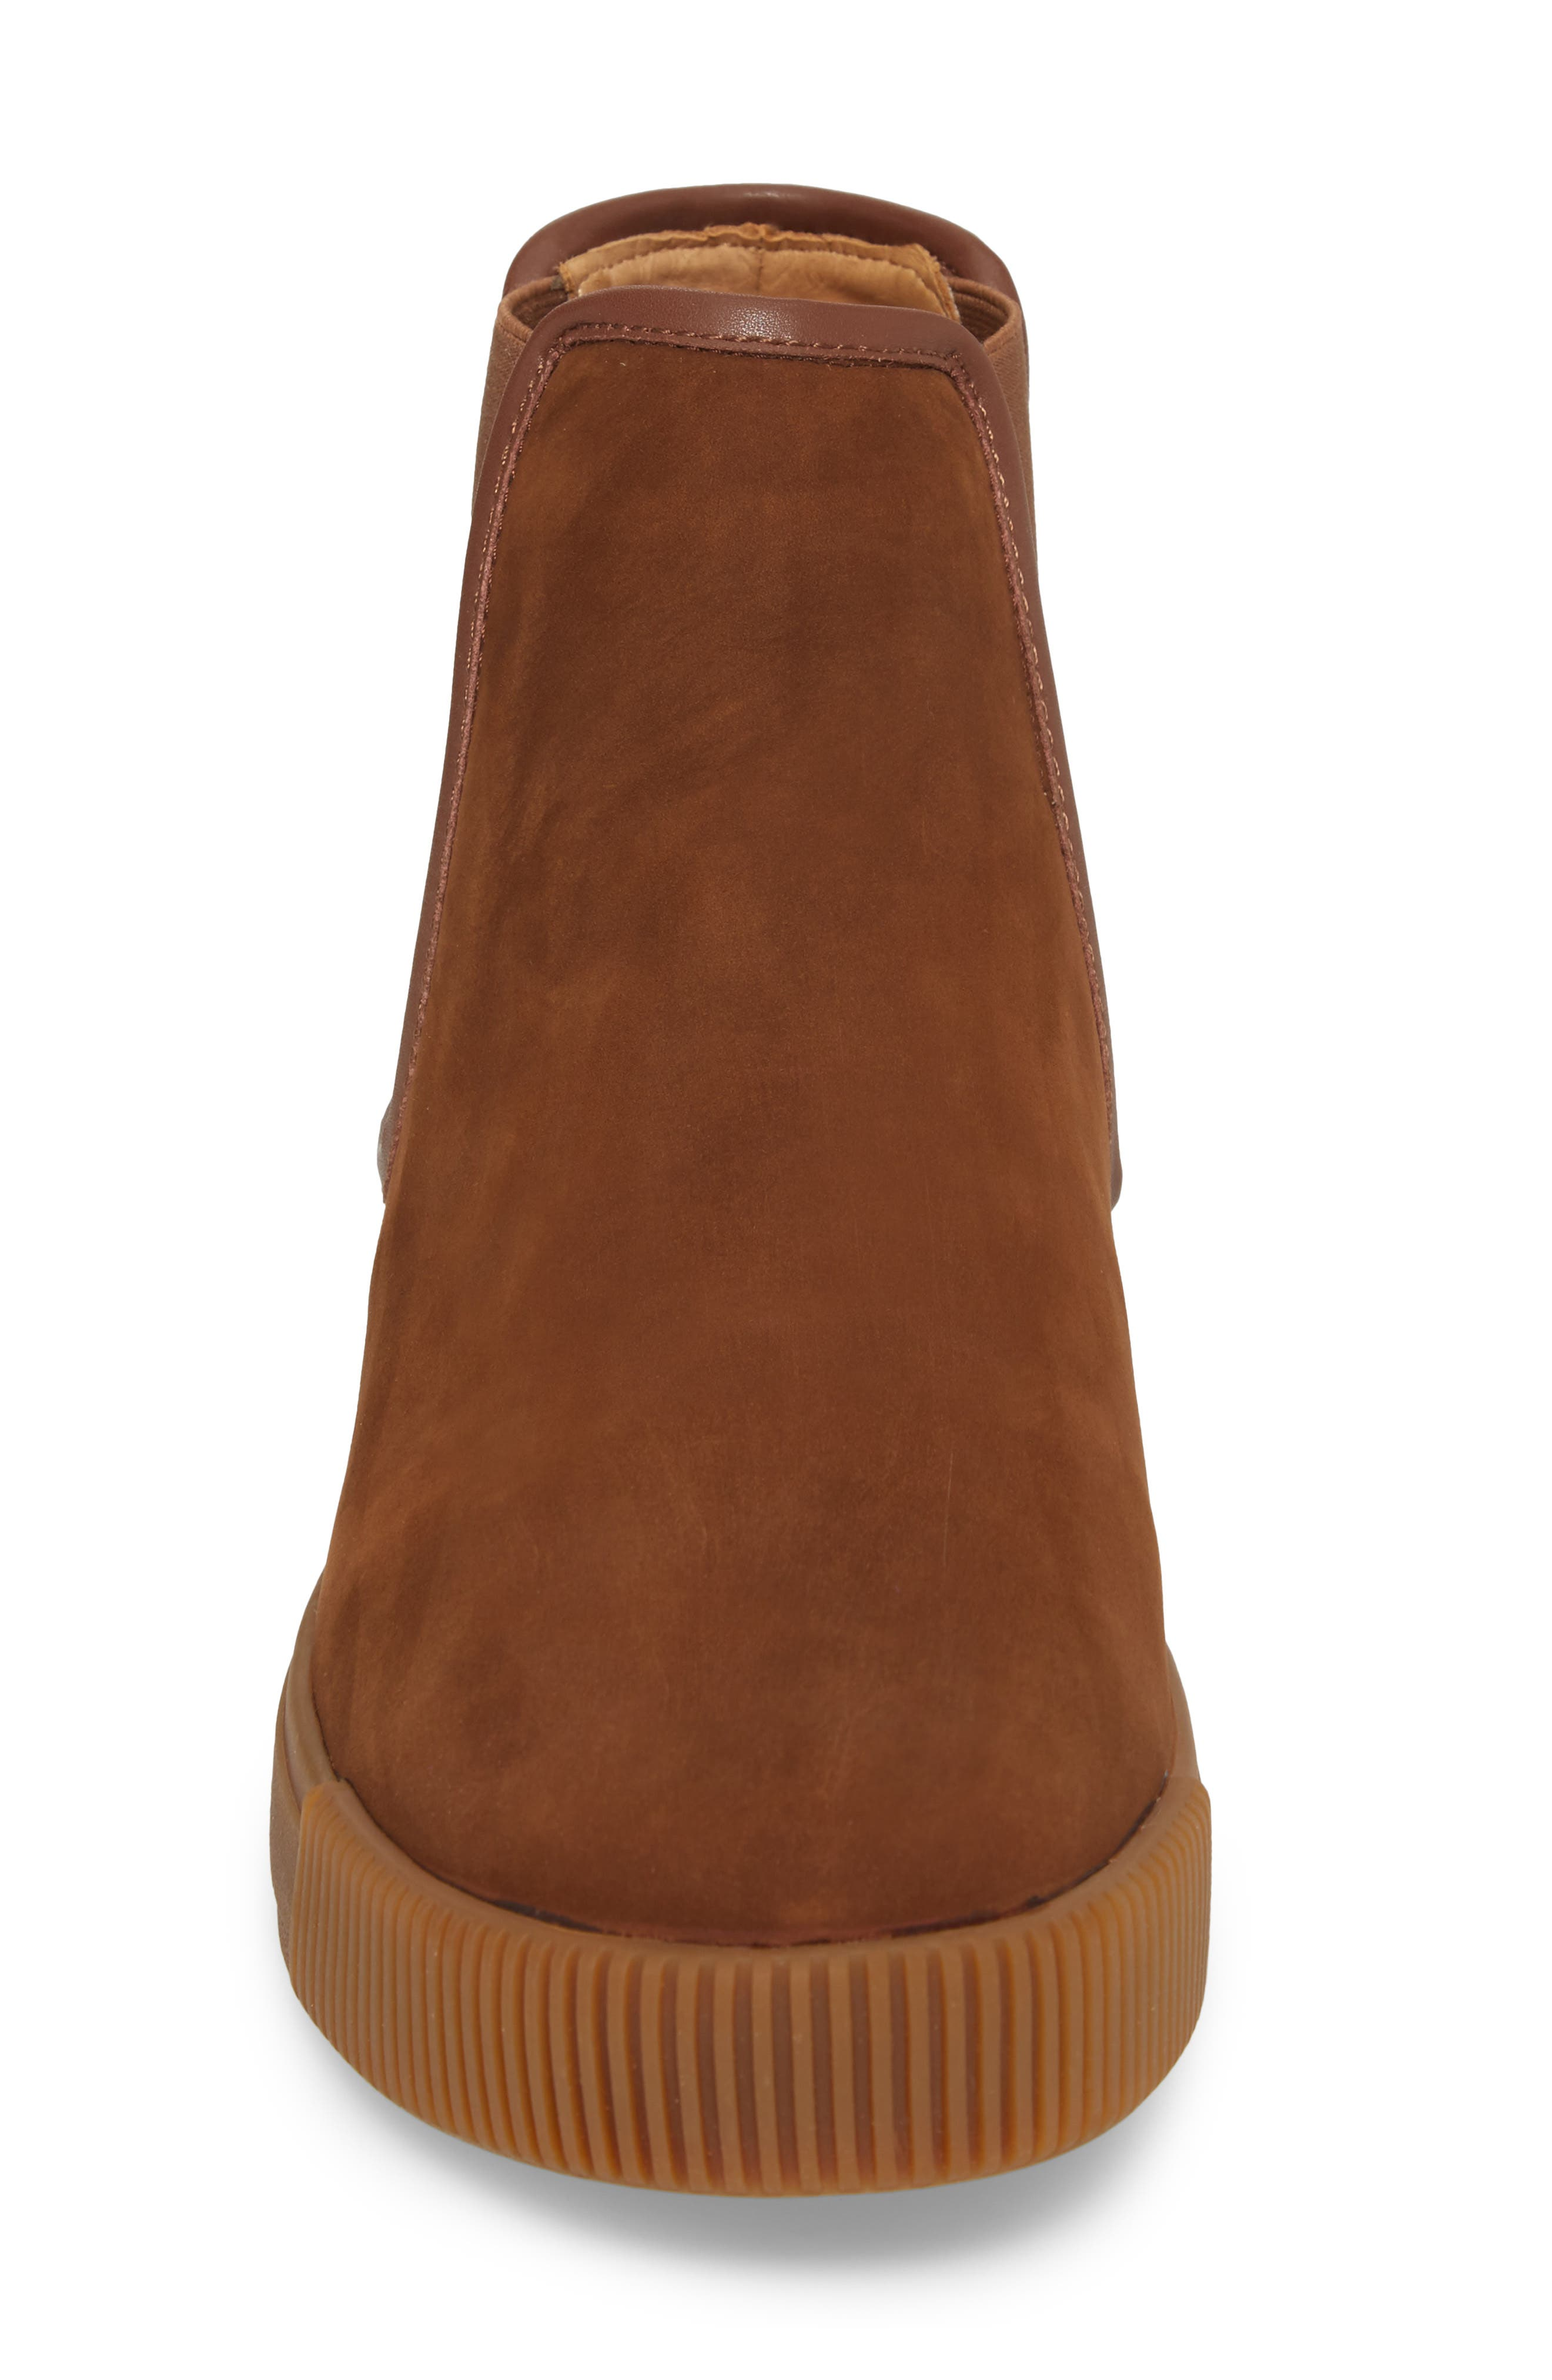 Lyons Chelsea Boot,                             Alternate thumbnail 4, color,                             CHOCOLATE SUEDE